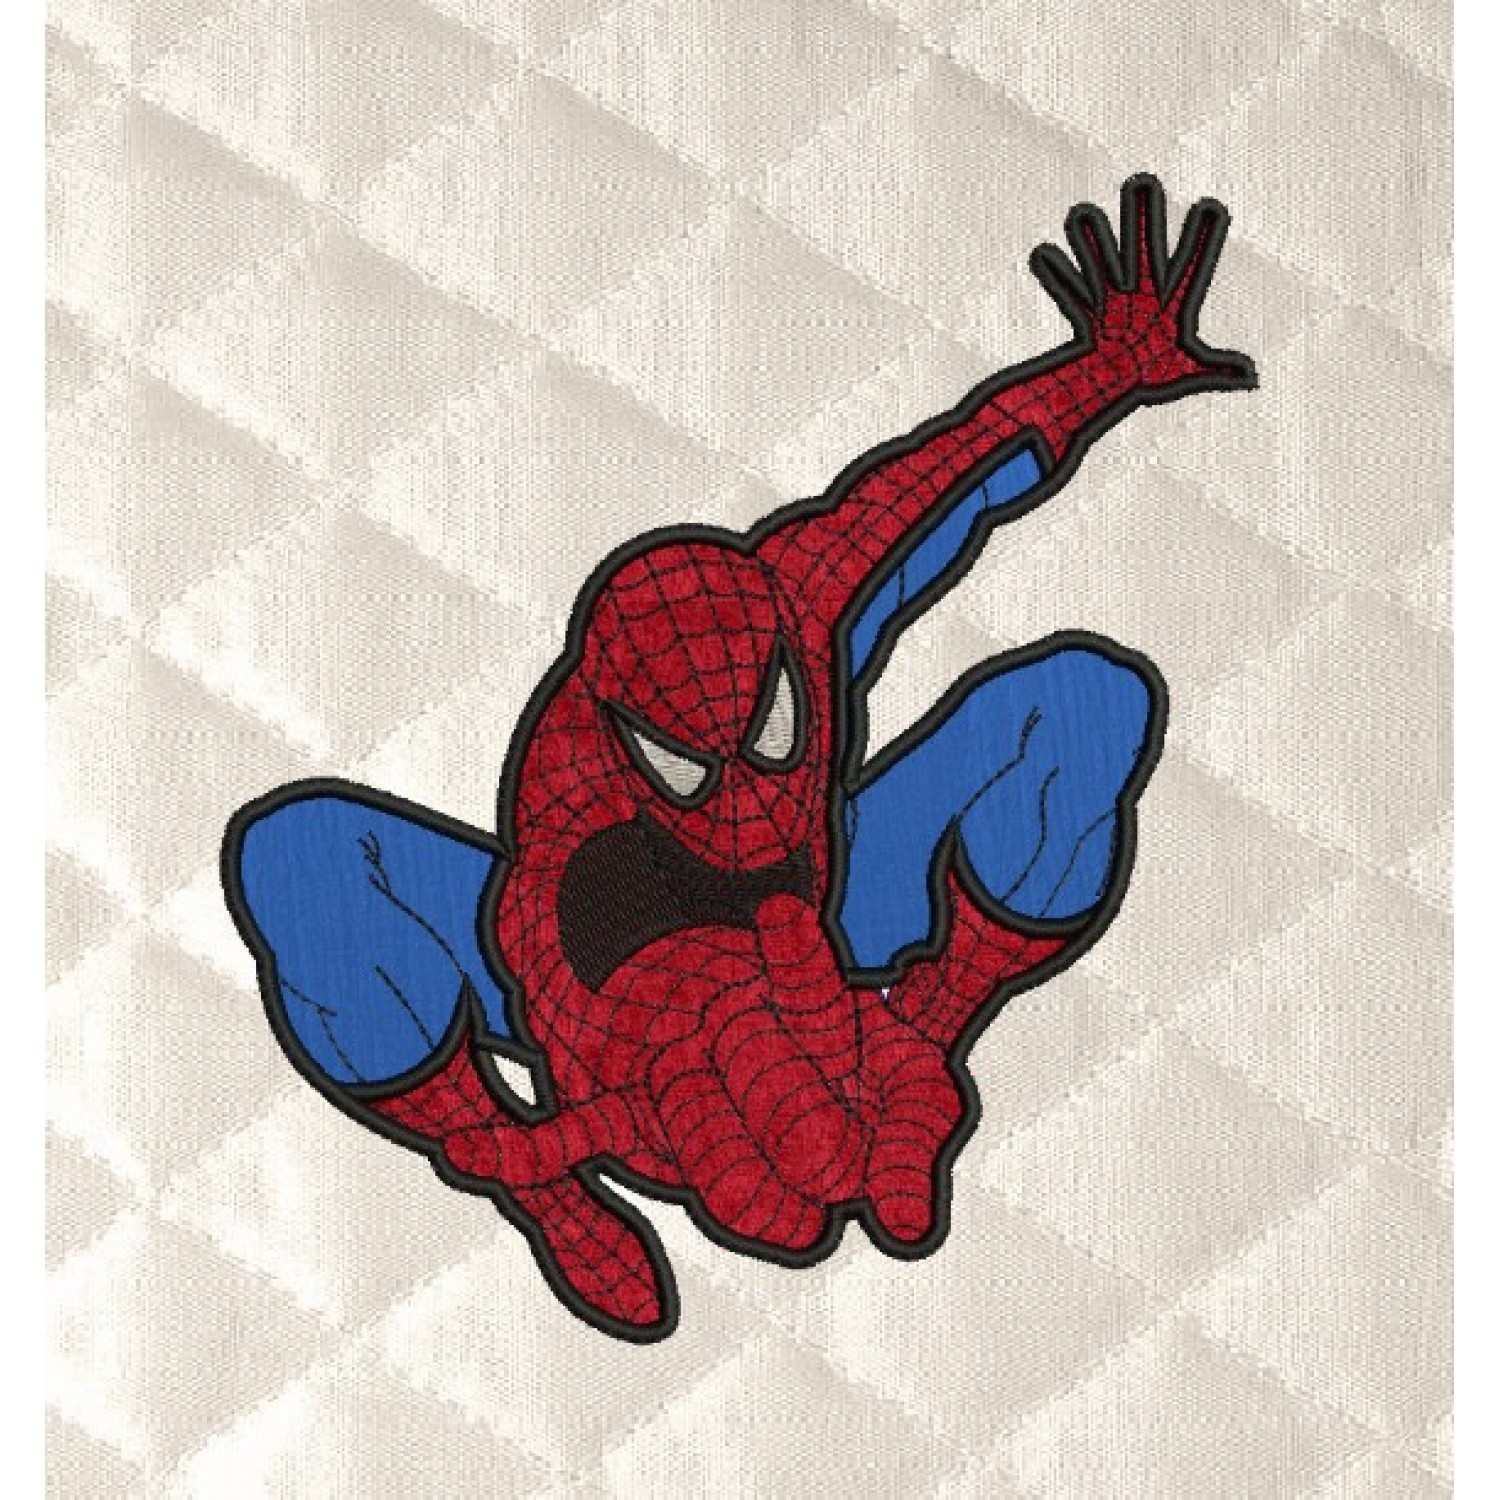 spiderman v4 embroidery